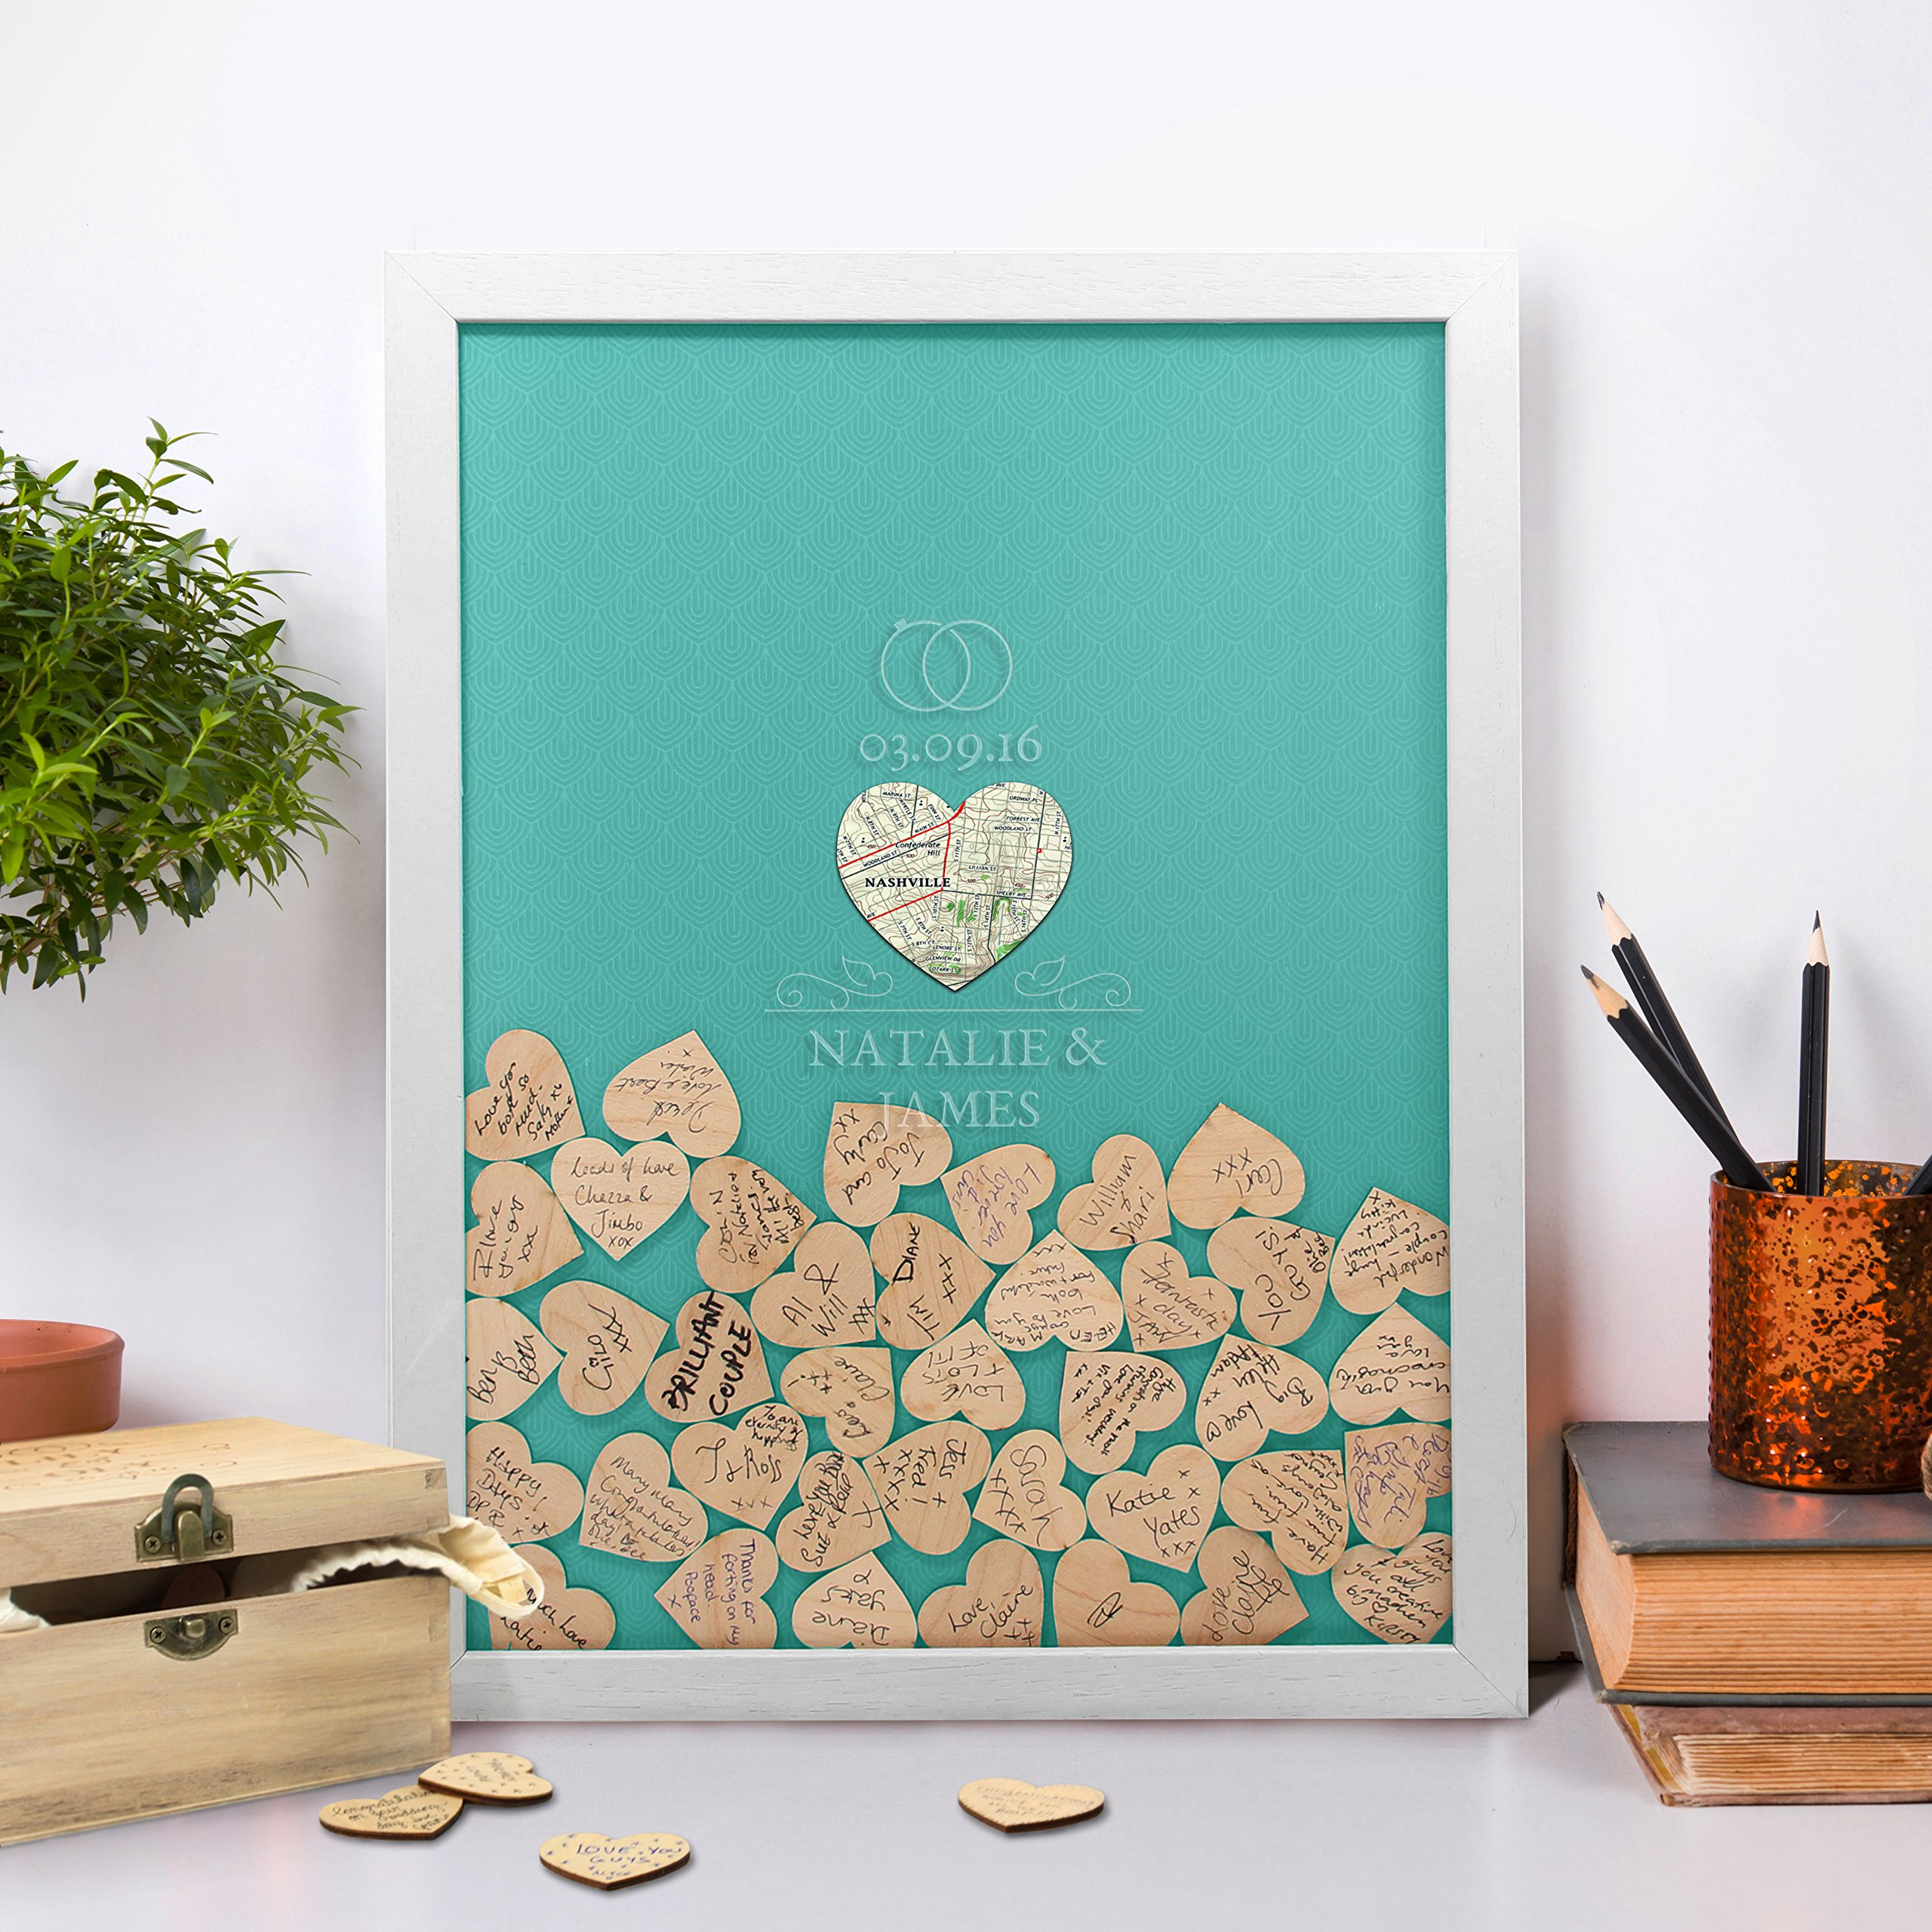 Wedding Drop Box - an alternative Wedding Guest Book (60 tokens, Teal Green) by Butler and Hill